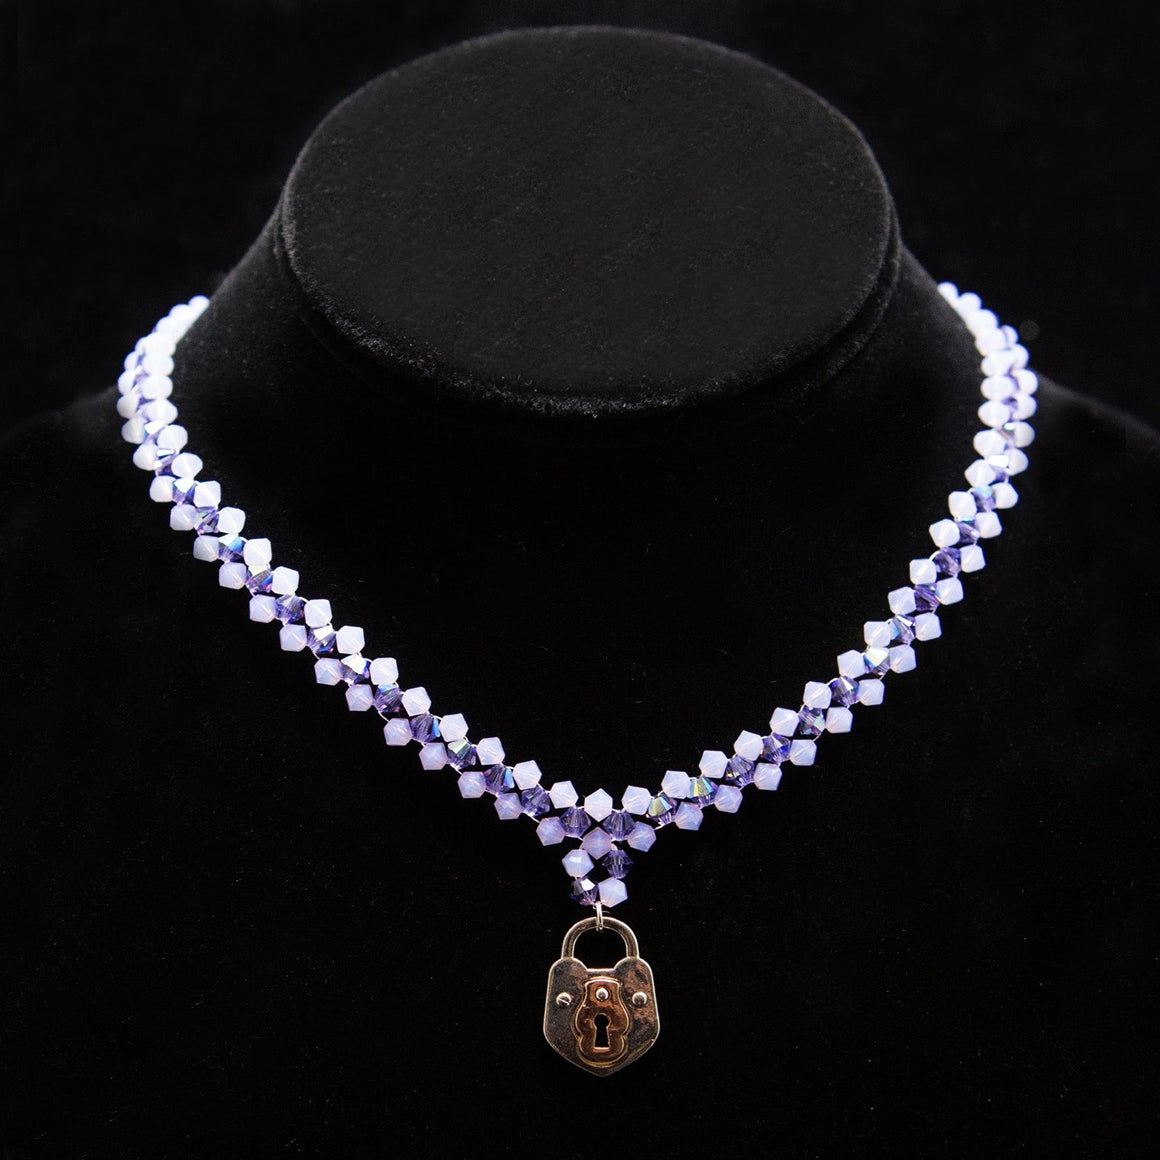 Day Collar: Hand Woven Lavender and Amethyst-Purple Swarovski Crystal Beads with Keyhole Locket